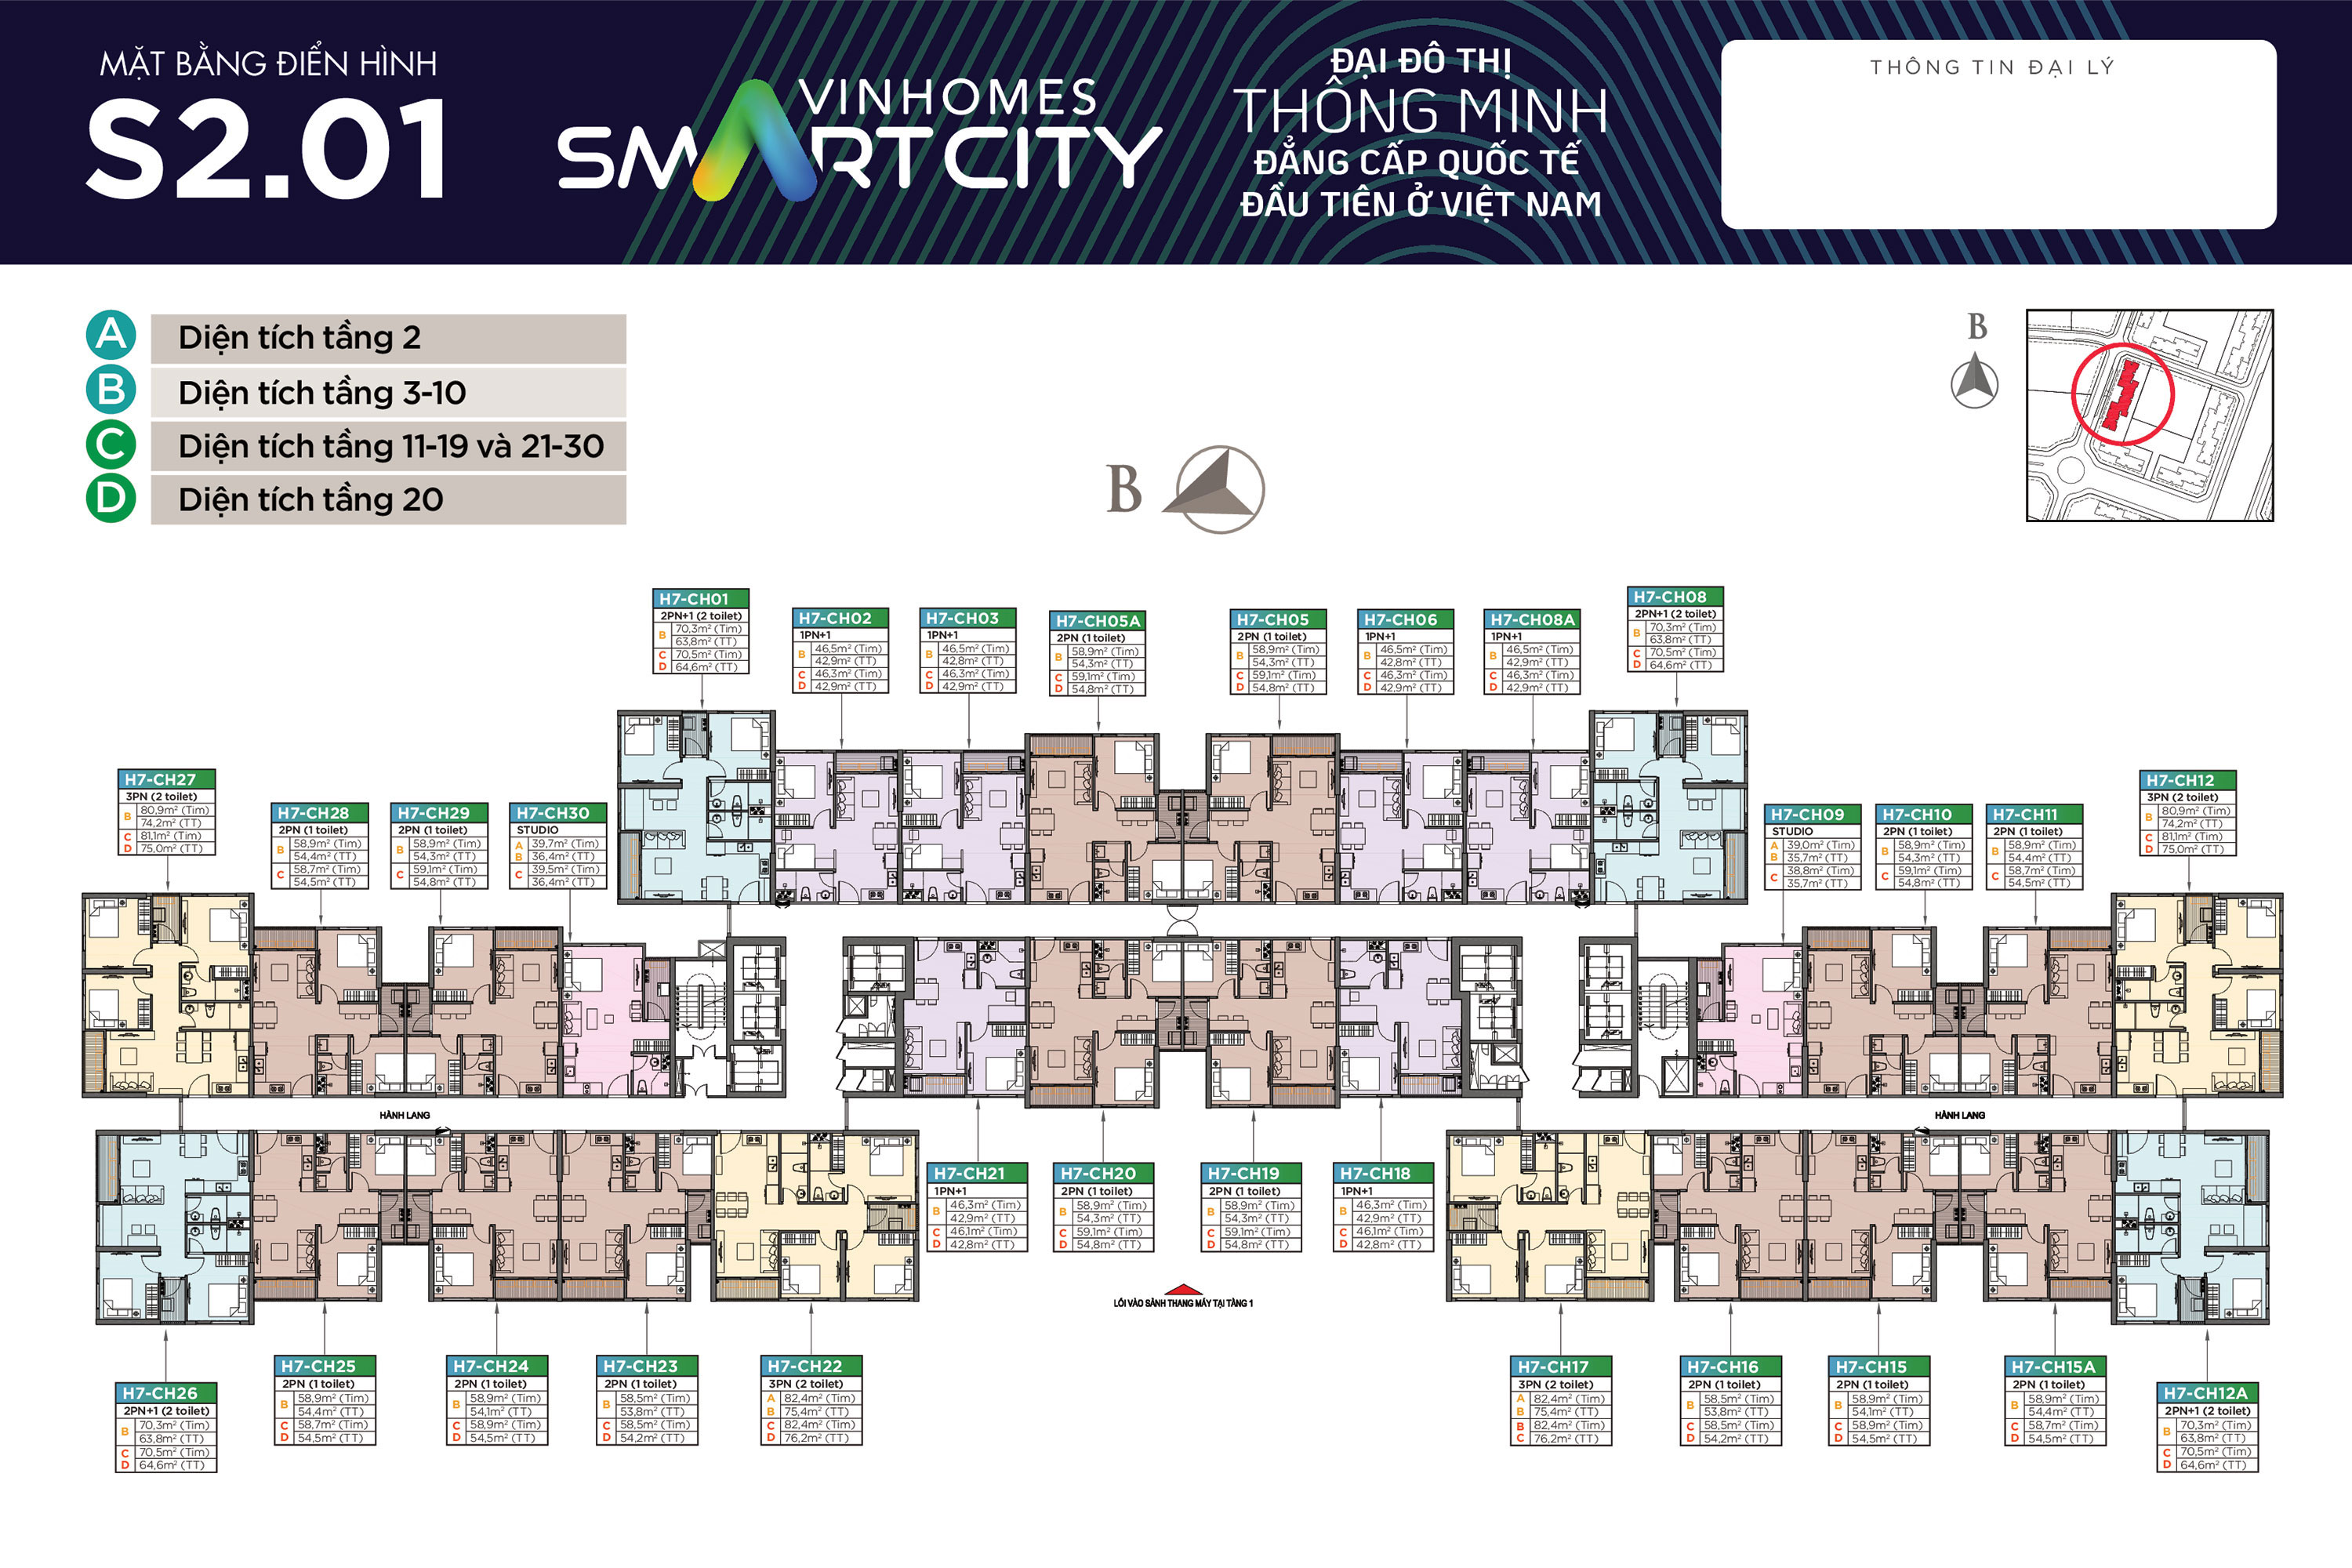 mat-bang-toa-s201-vinhomes-smart-city